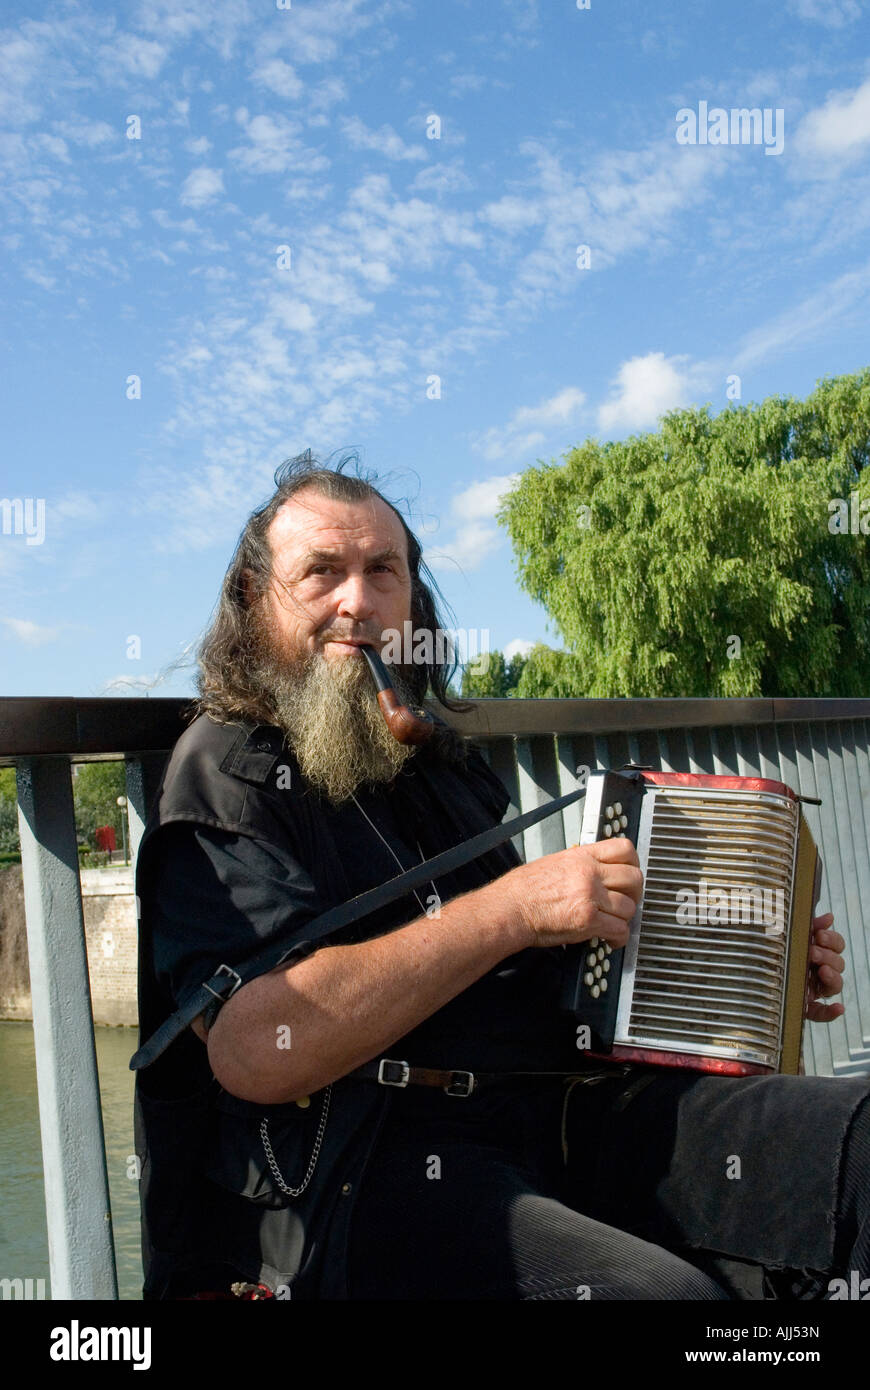 Pipe smoking busker playing the accordion on a Seine bridge Paris France - Stock Image